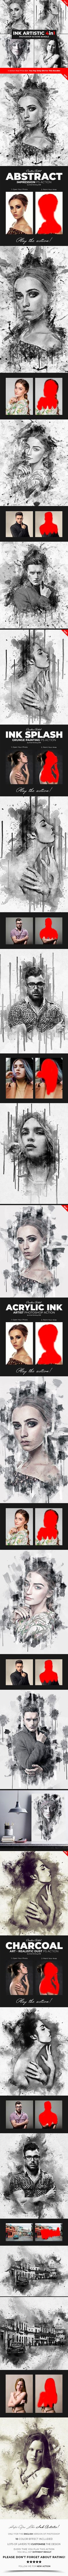 Ink Artistic - 4in1 Photoshop Actions Bundle